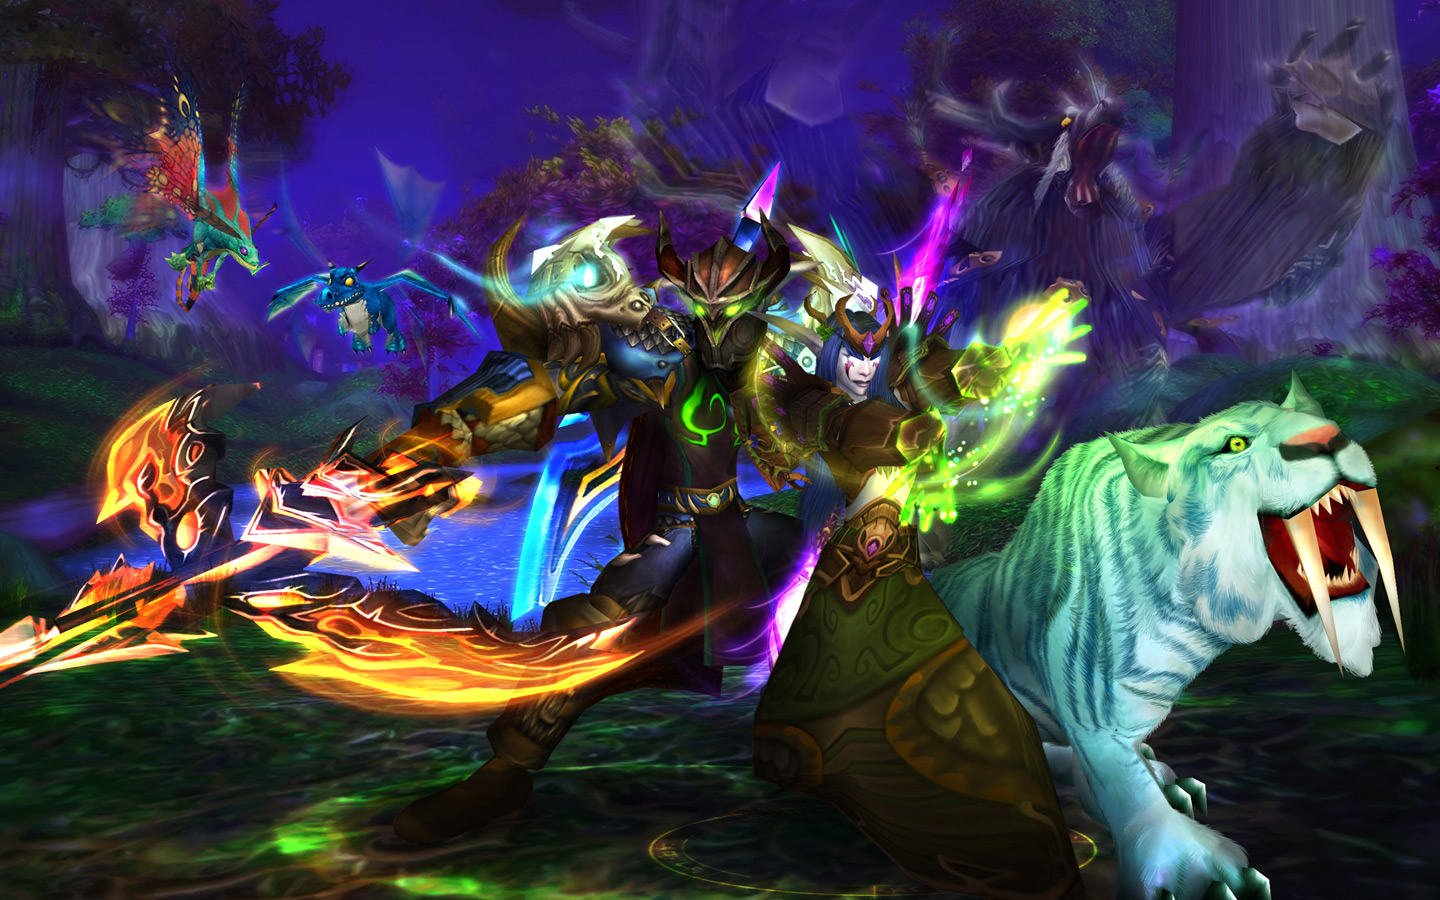 Awesome WoW Wallpapers   MMORPG Photo News   MMOsitecom 1440x900